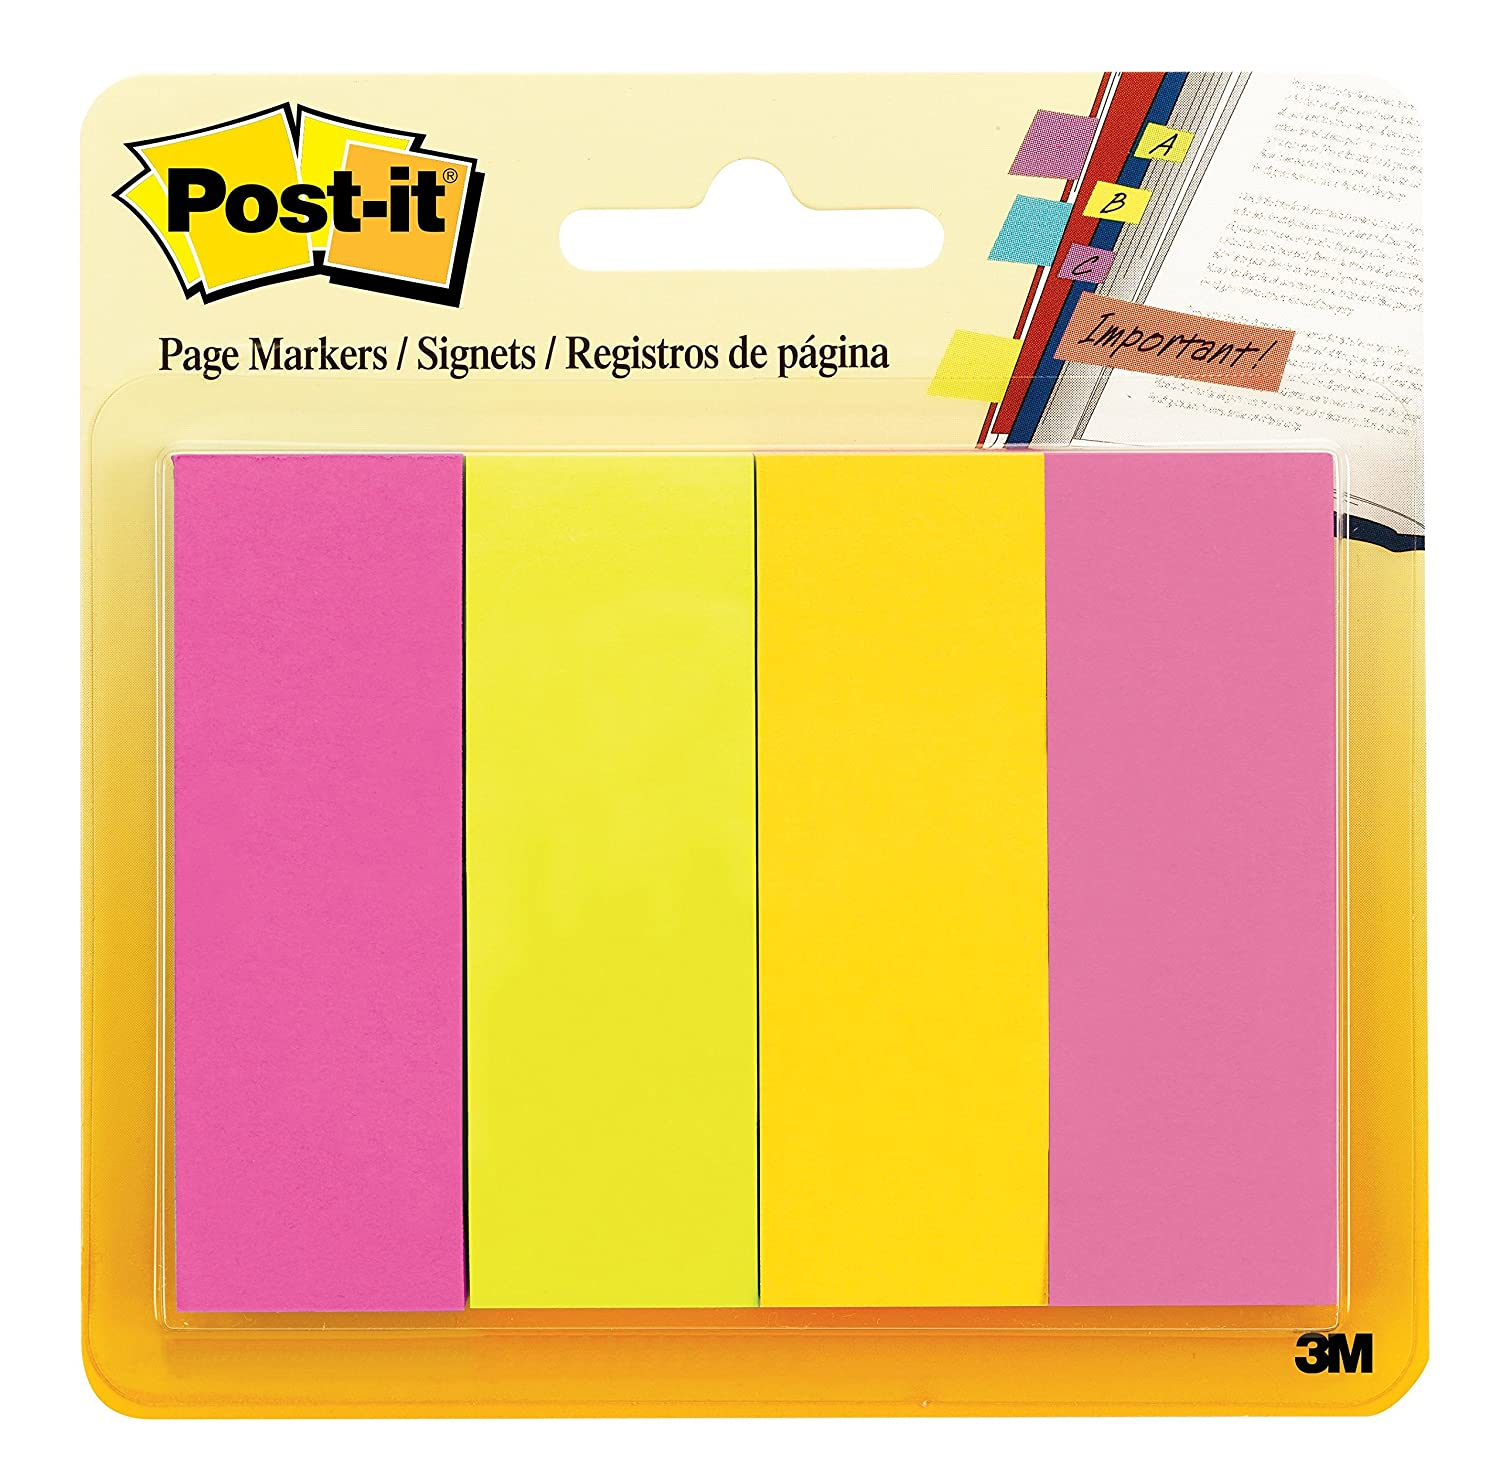 Post-it Page Markers, Assorted Colors, 1 in x 3 in, 50 Sheets/Pad, 4 Pads/Pack (671-4AU)